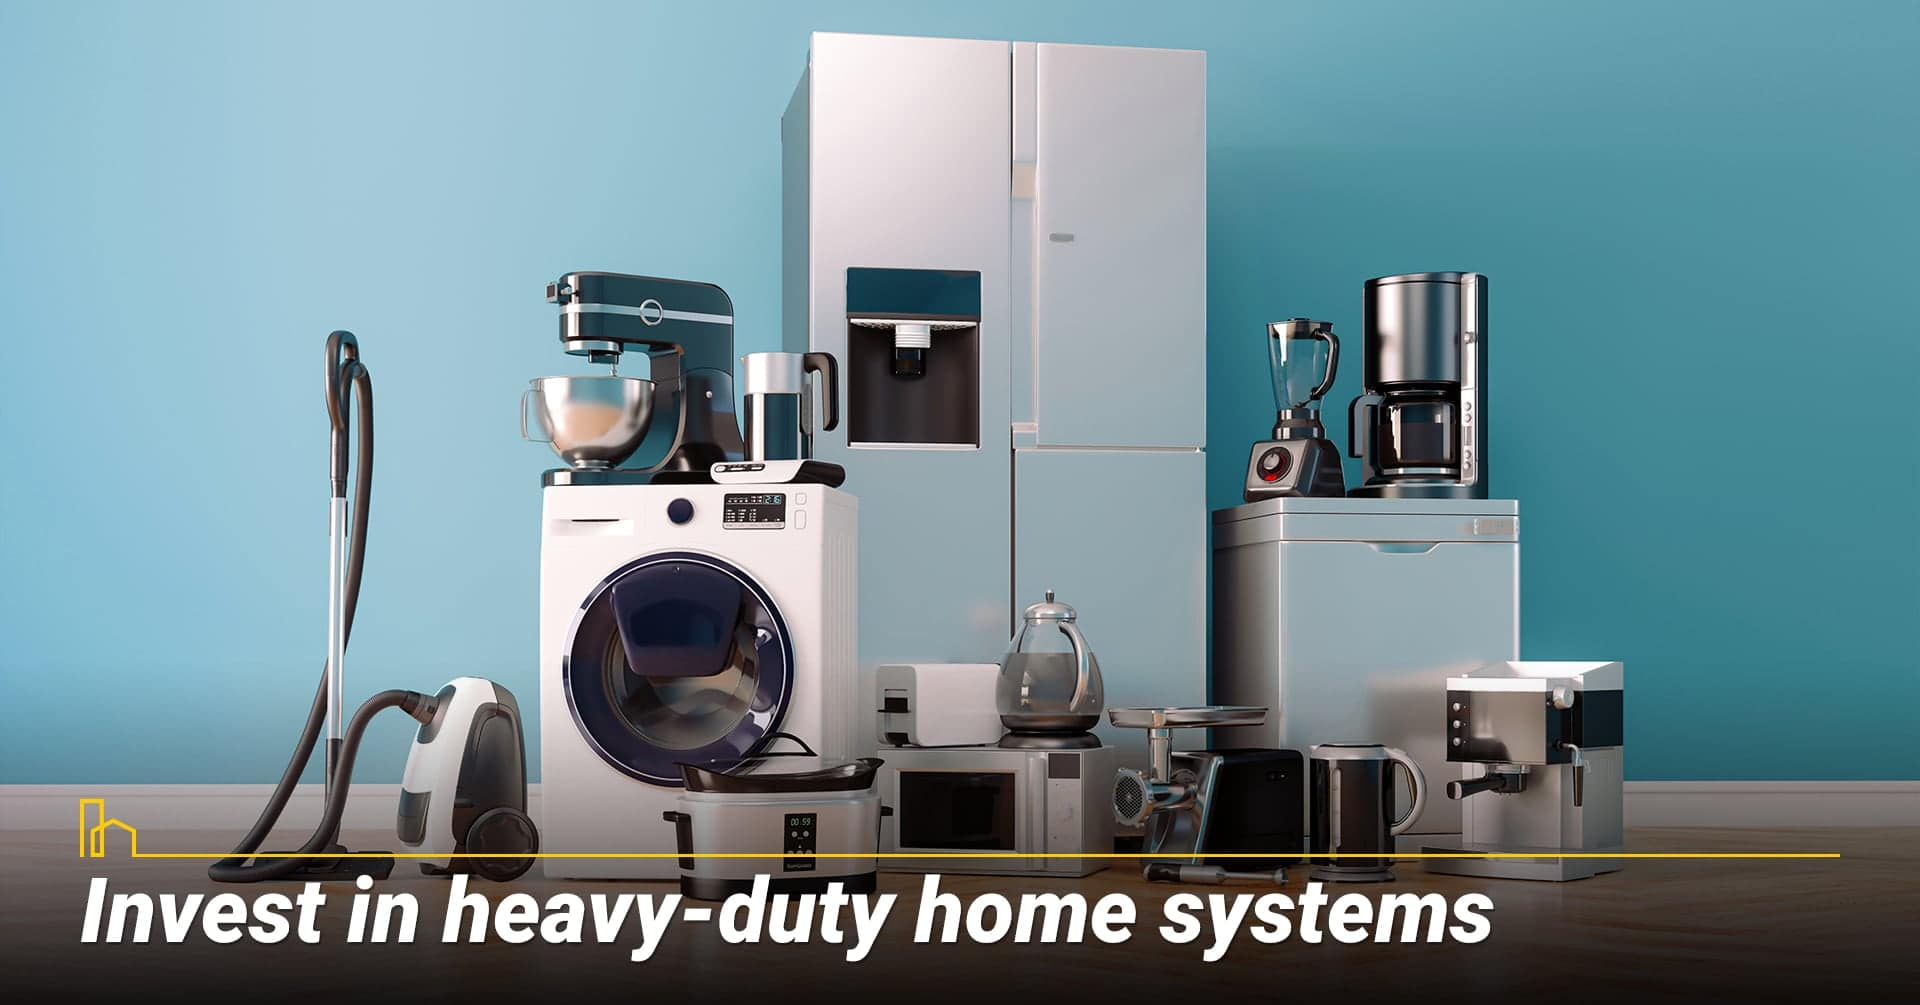 Invest in heavy-duty home systems, invest in quality items